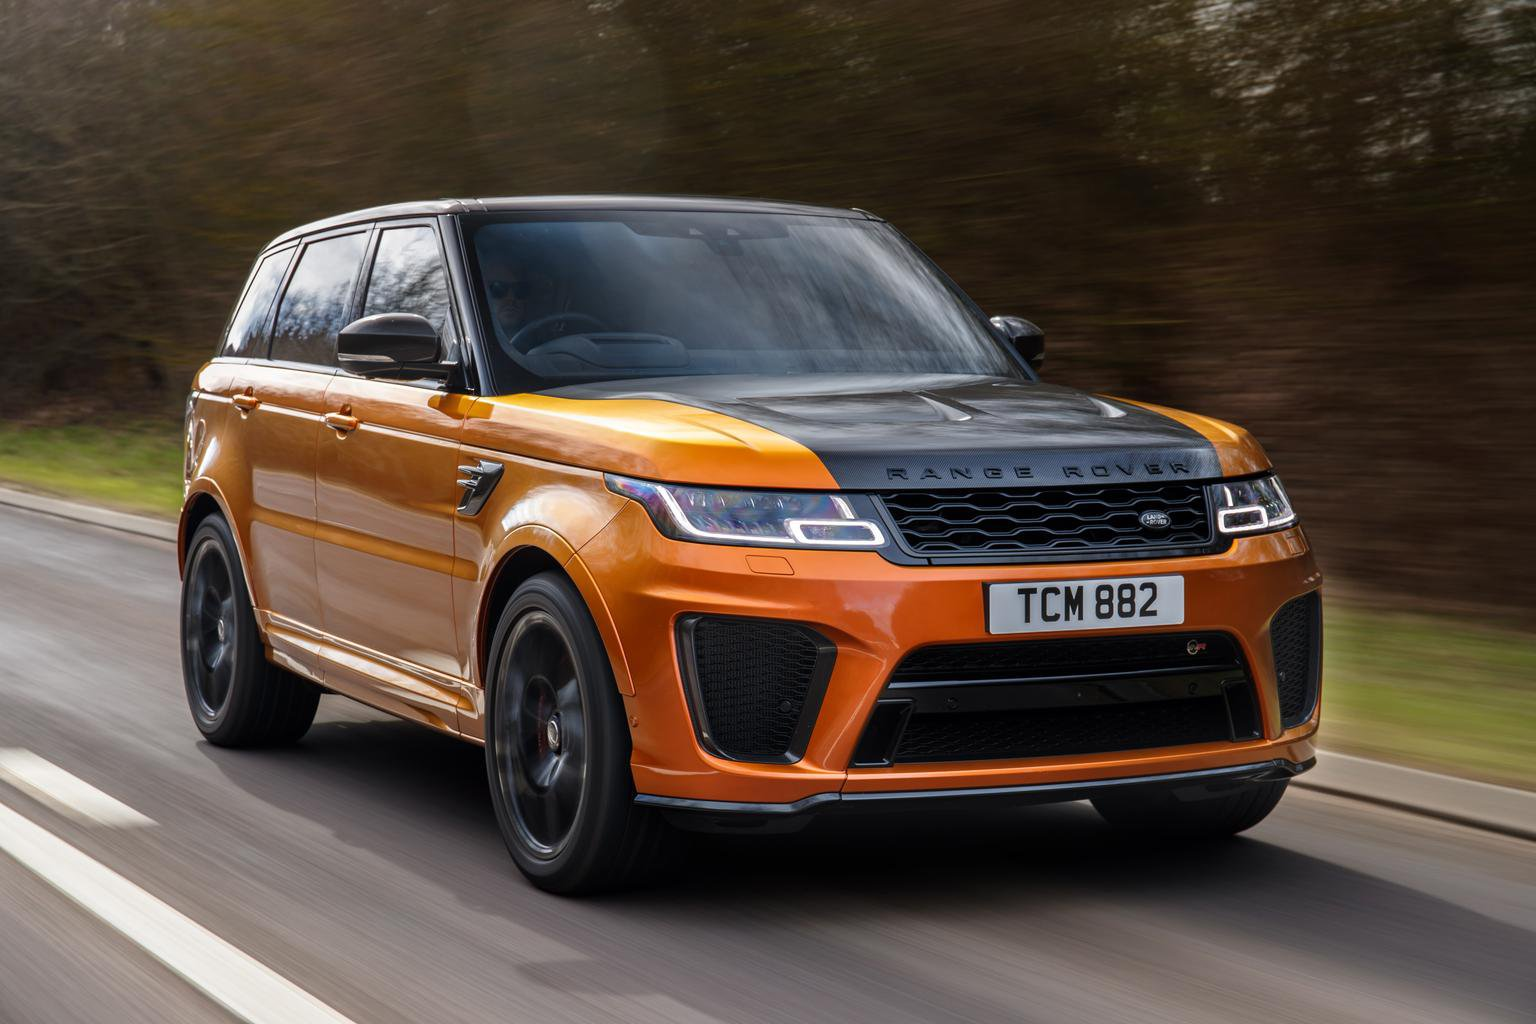 2018 Range Rover Sport Svr Review Price Specs And Release Dates